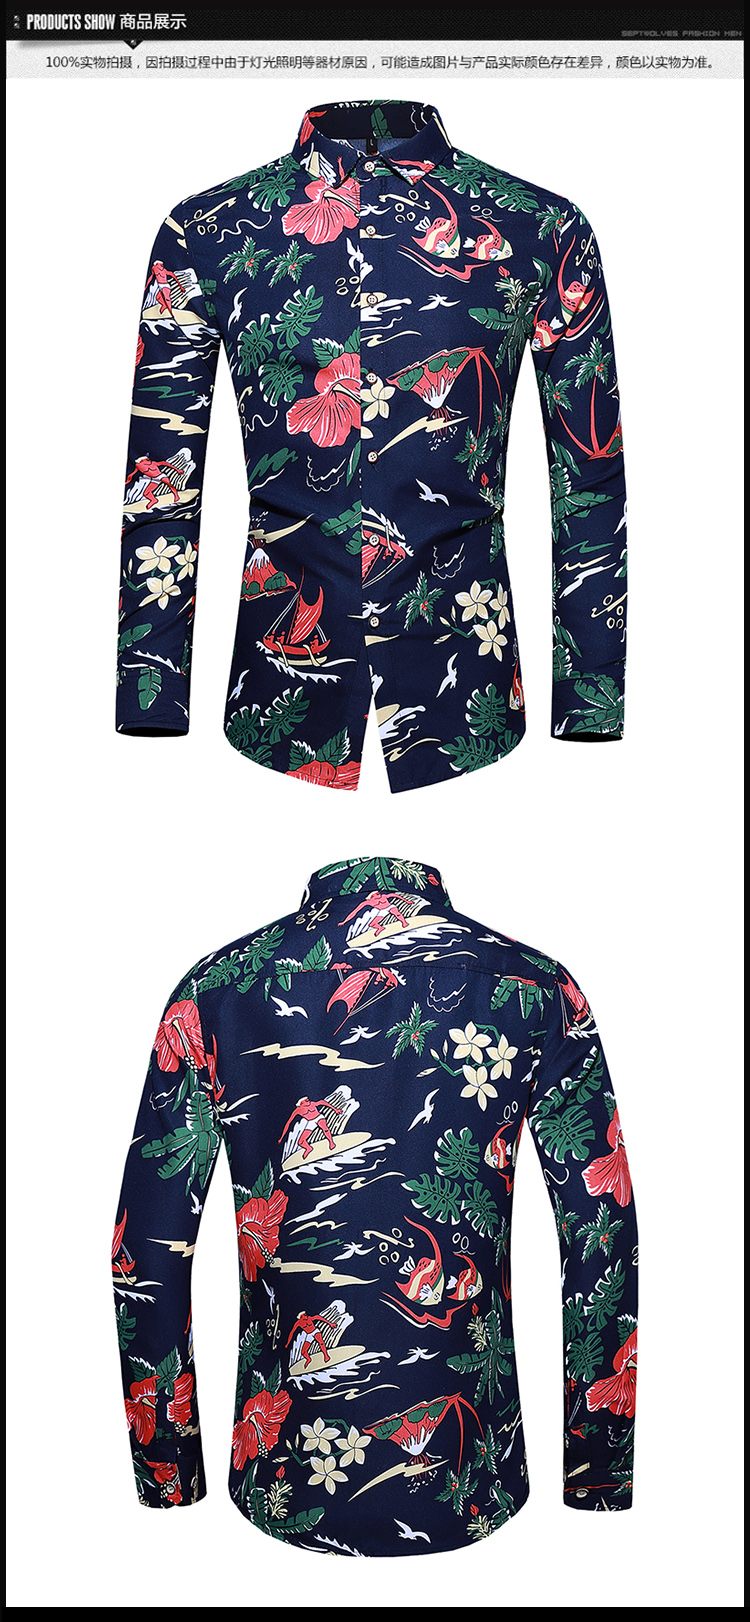 HTB1cuOxXBv0gK0jSZKbq6zK2FXa7 - Casuals Shirt Men Autumn New Arrival Personality Printing Long Sleeve Shirts Mens Fashion Big Size Business Office Shirt 6XL 7XL